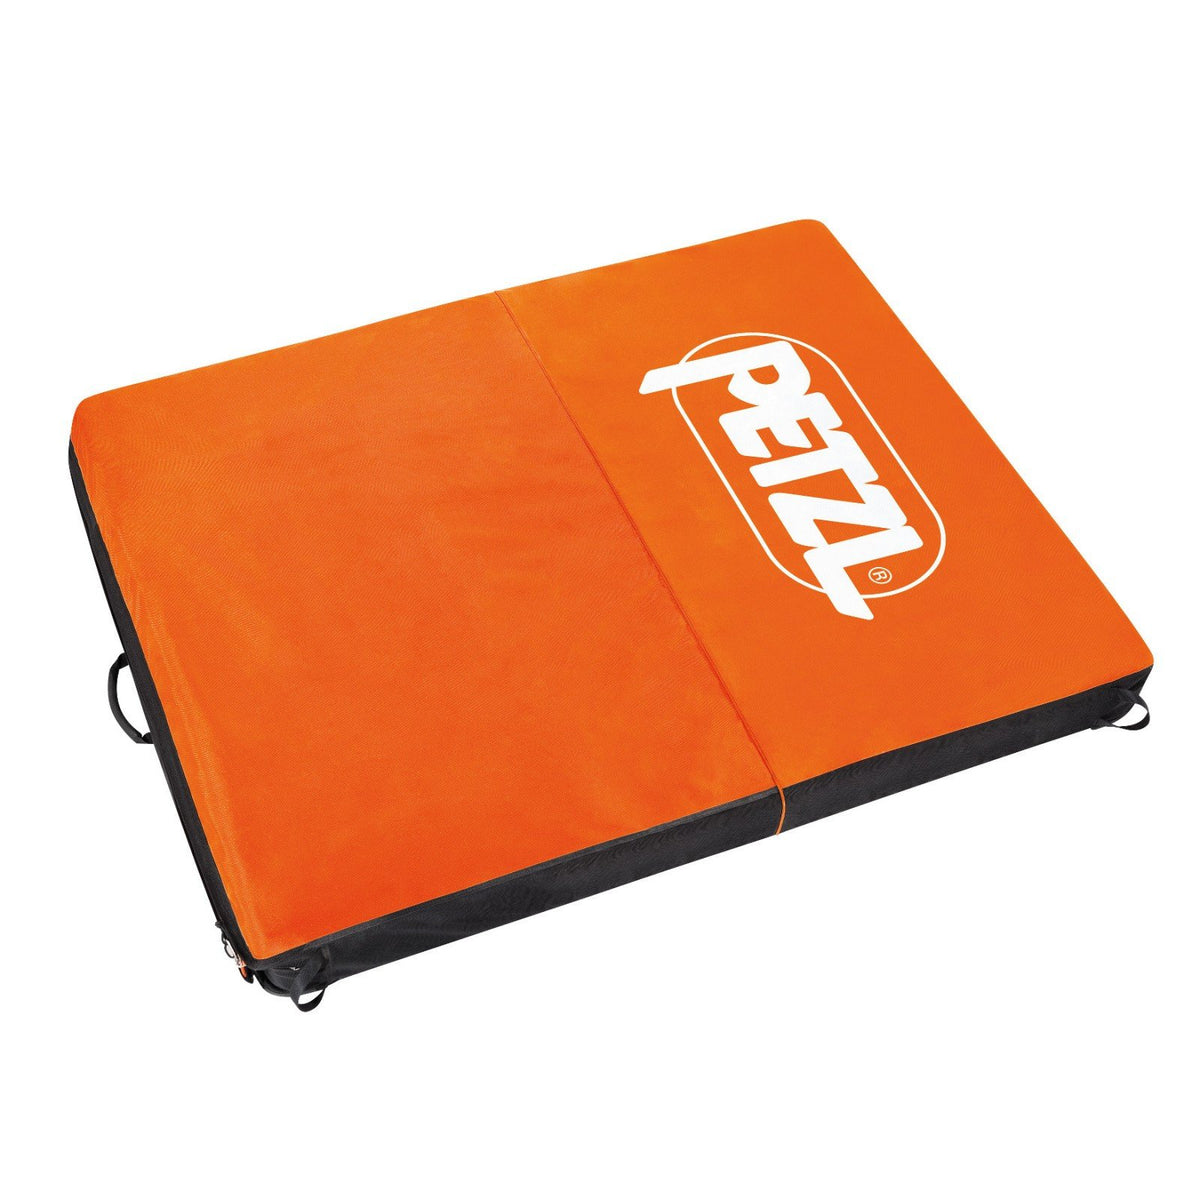 Petzl Cirro bouldering crash pad, shown open and laid flat